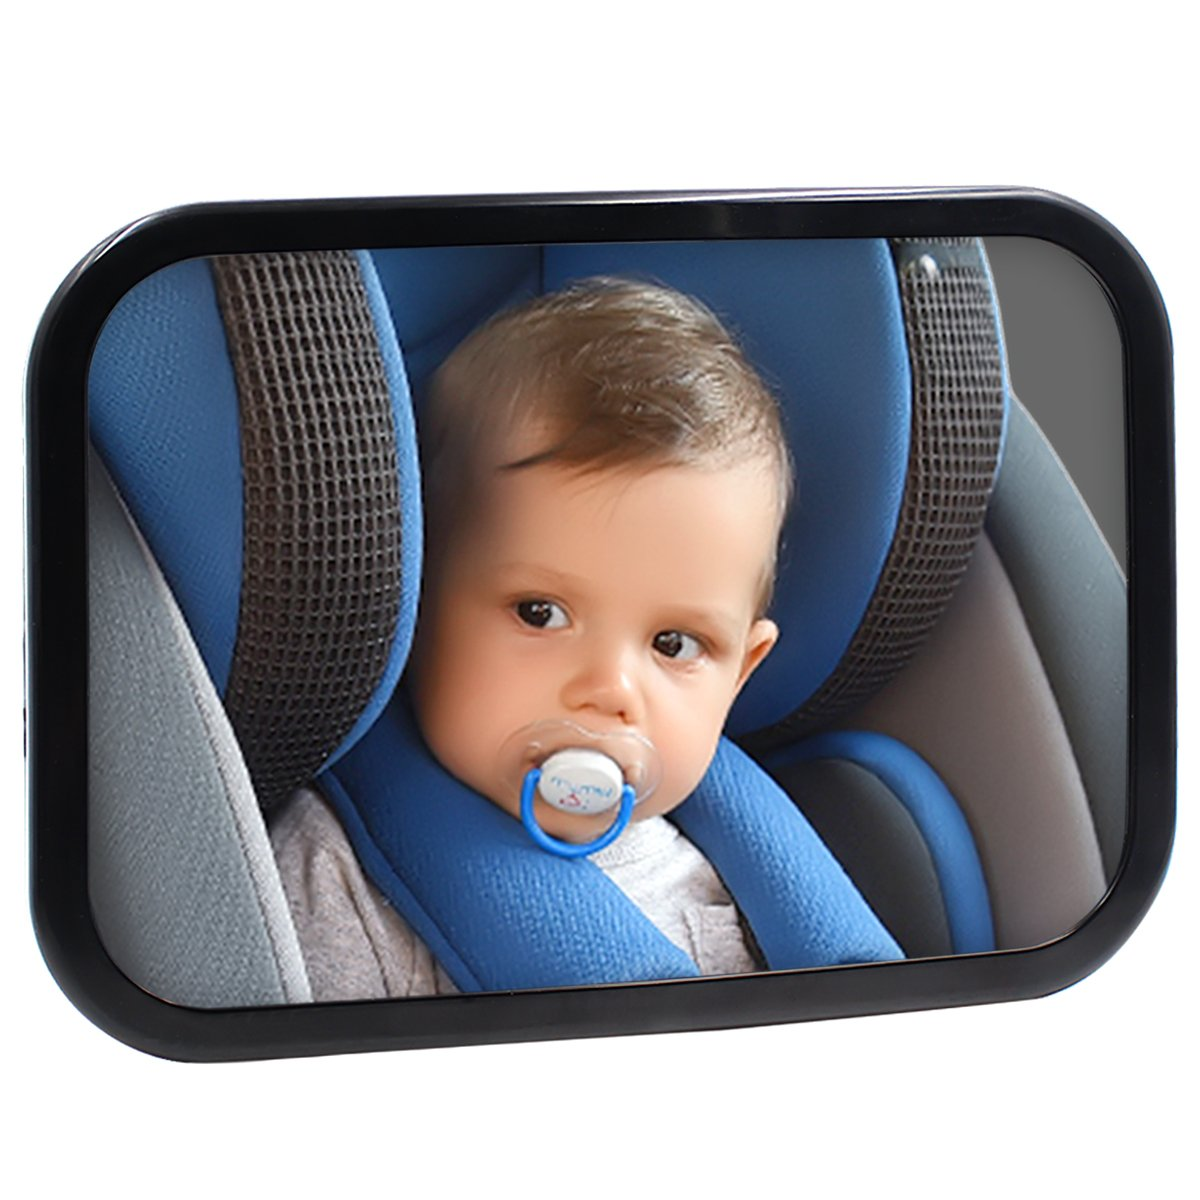 Coindivi Safe Baby Car Mirror for Rear View Facing Back Seat for Infant Child,Fully Assembled and Adjustable,Backseat Shatterproof Mirror with Perfect Reflection by Coindivi